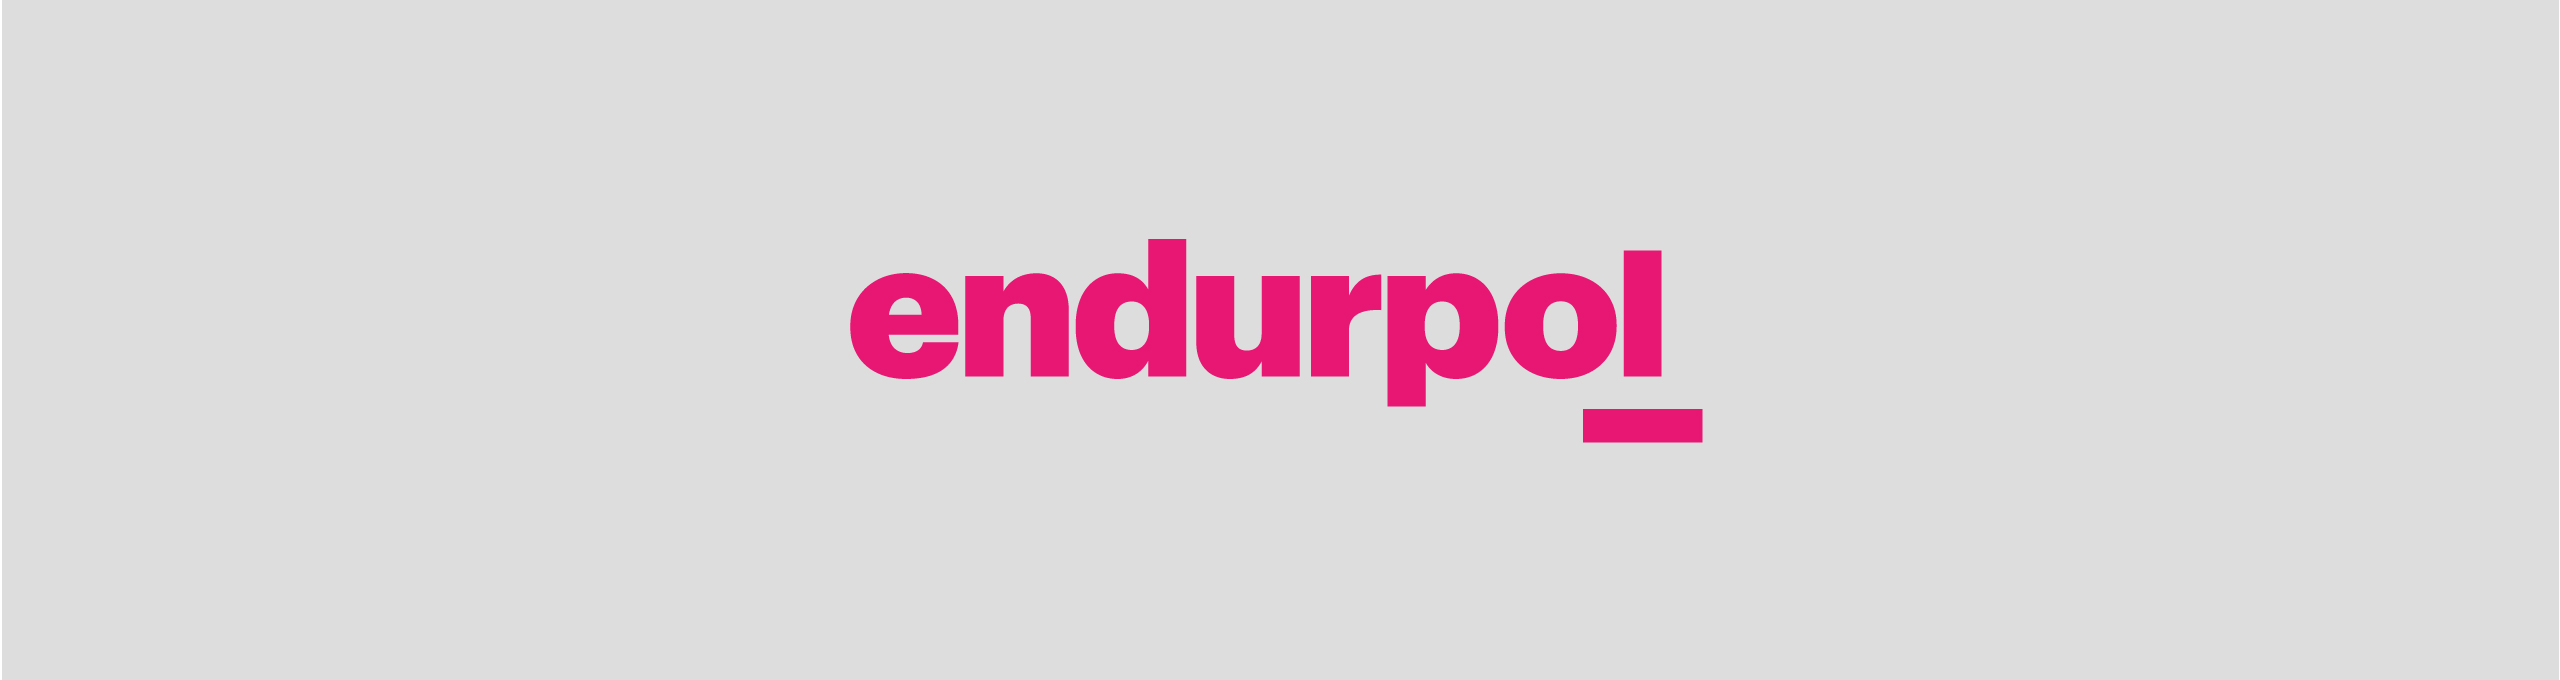 marinagoni-endurpol-indentity